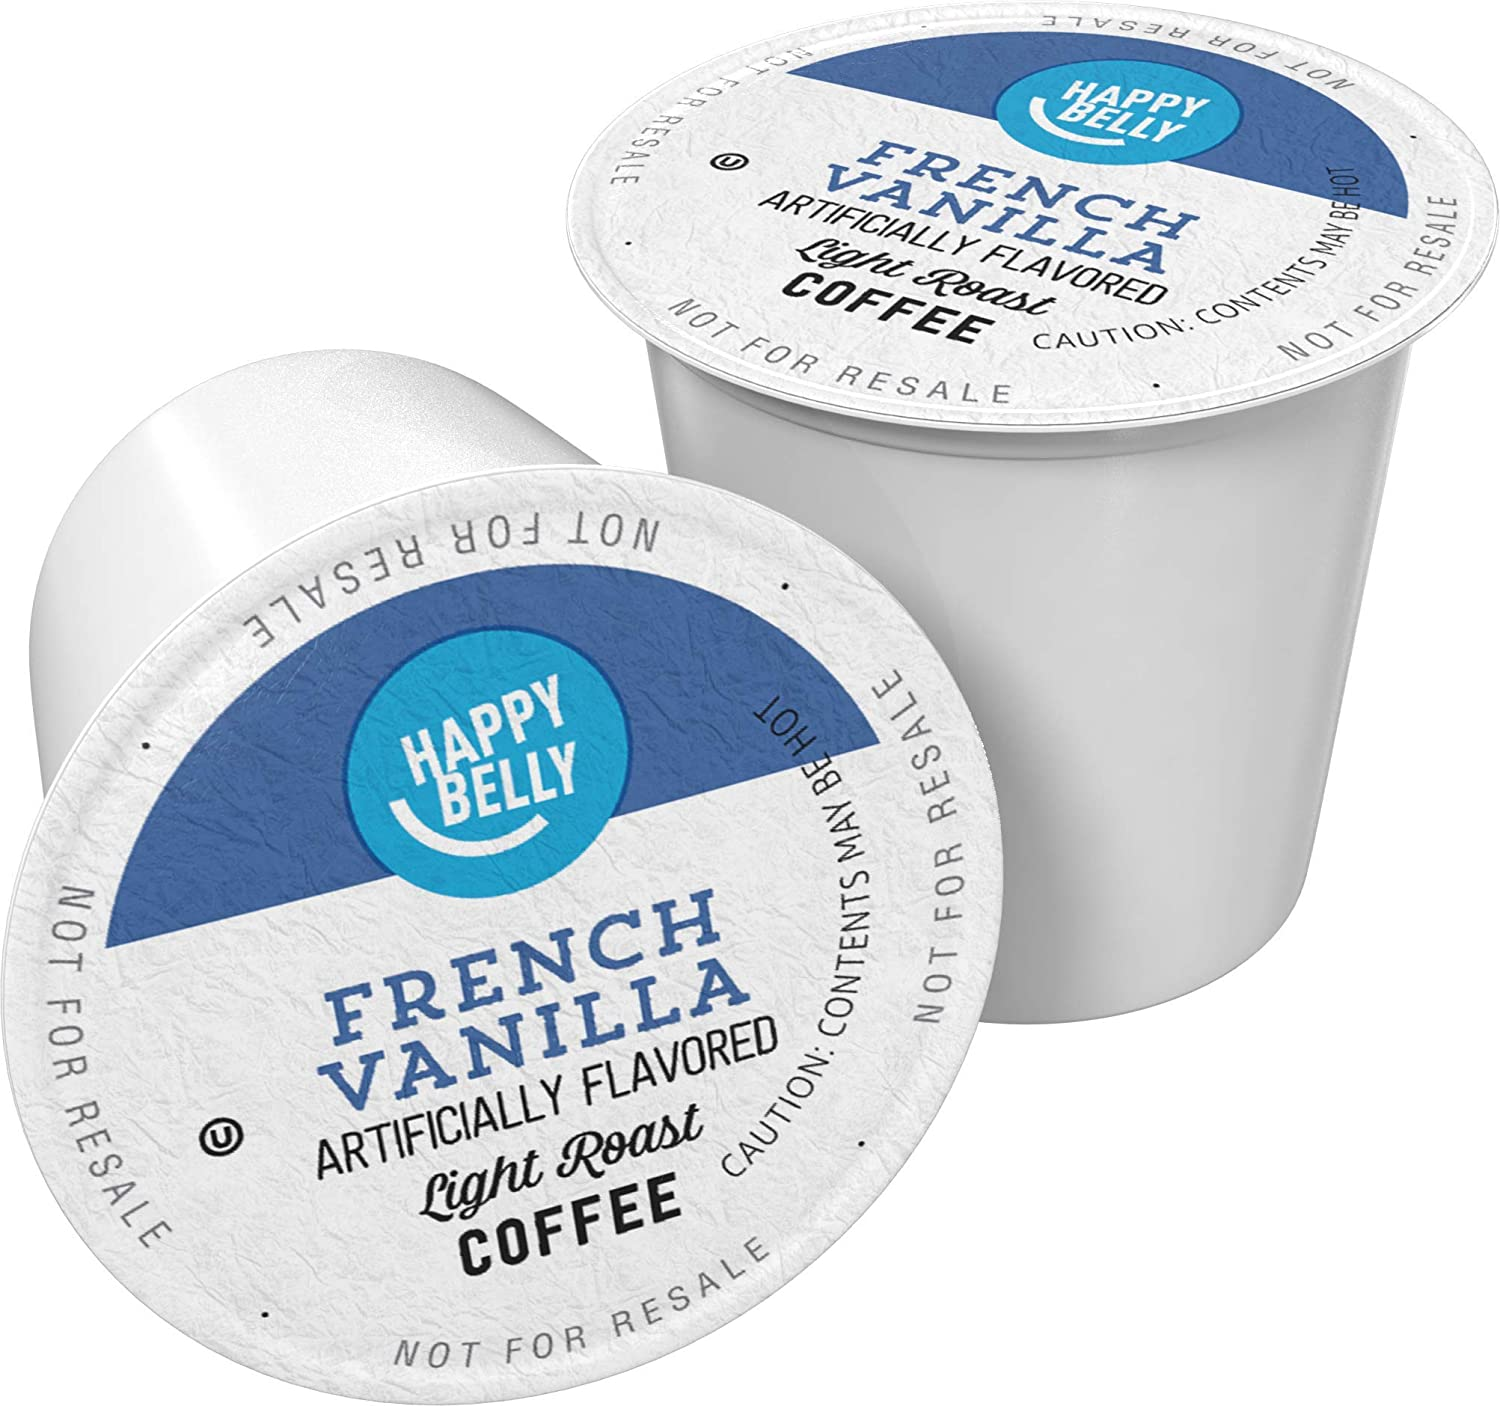 Amazon Brand - 100 Ct. Happy Belly Light Roast Coffee Pods, French Vanilla Flavored, Compatible with Keurig 2.0 K-Cup Brewers